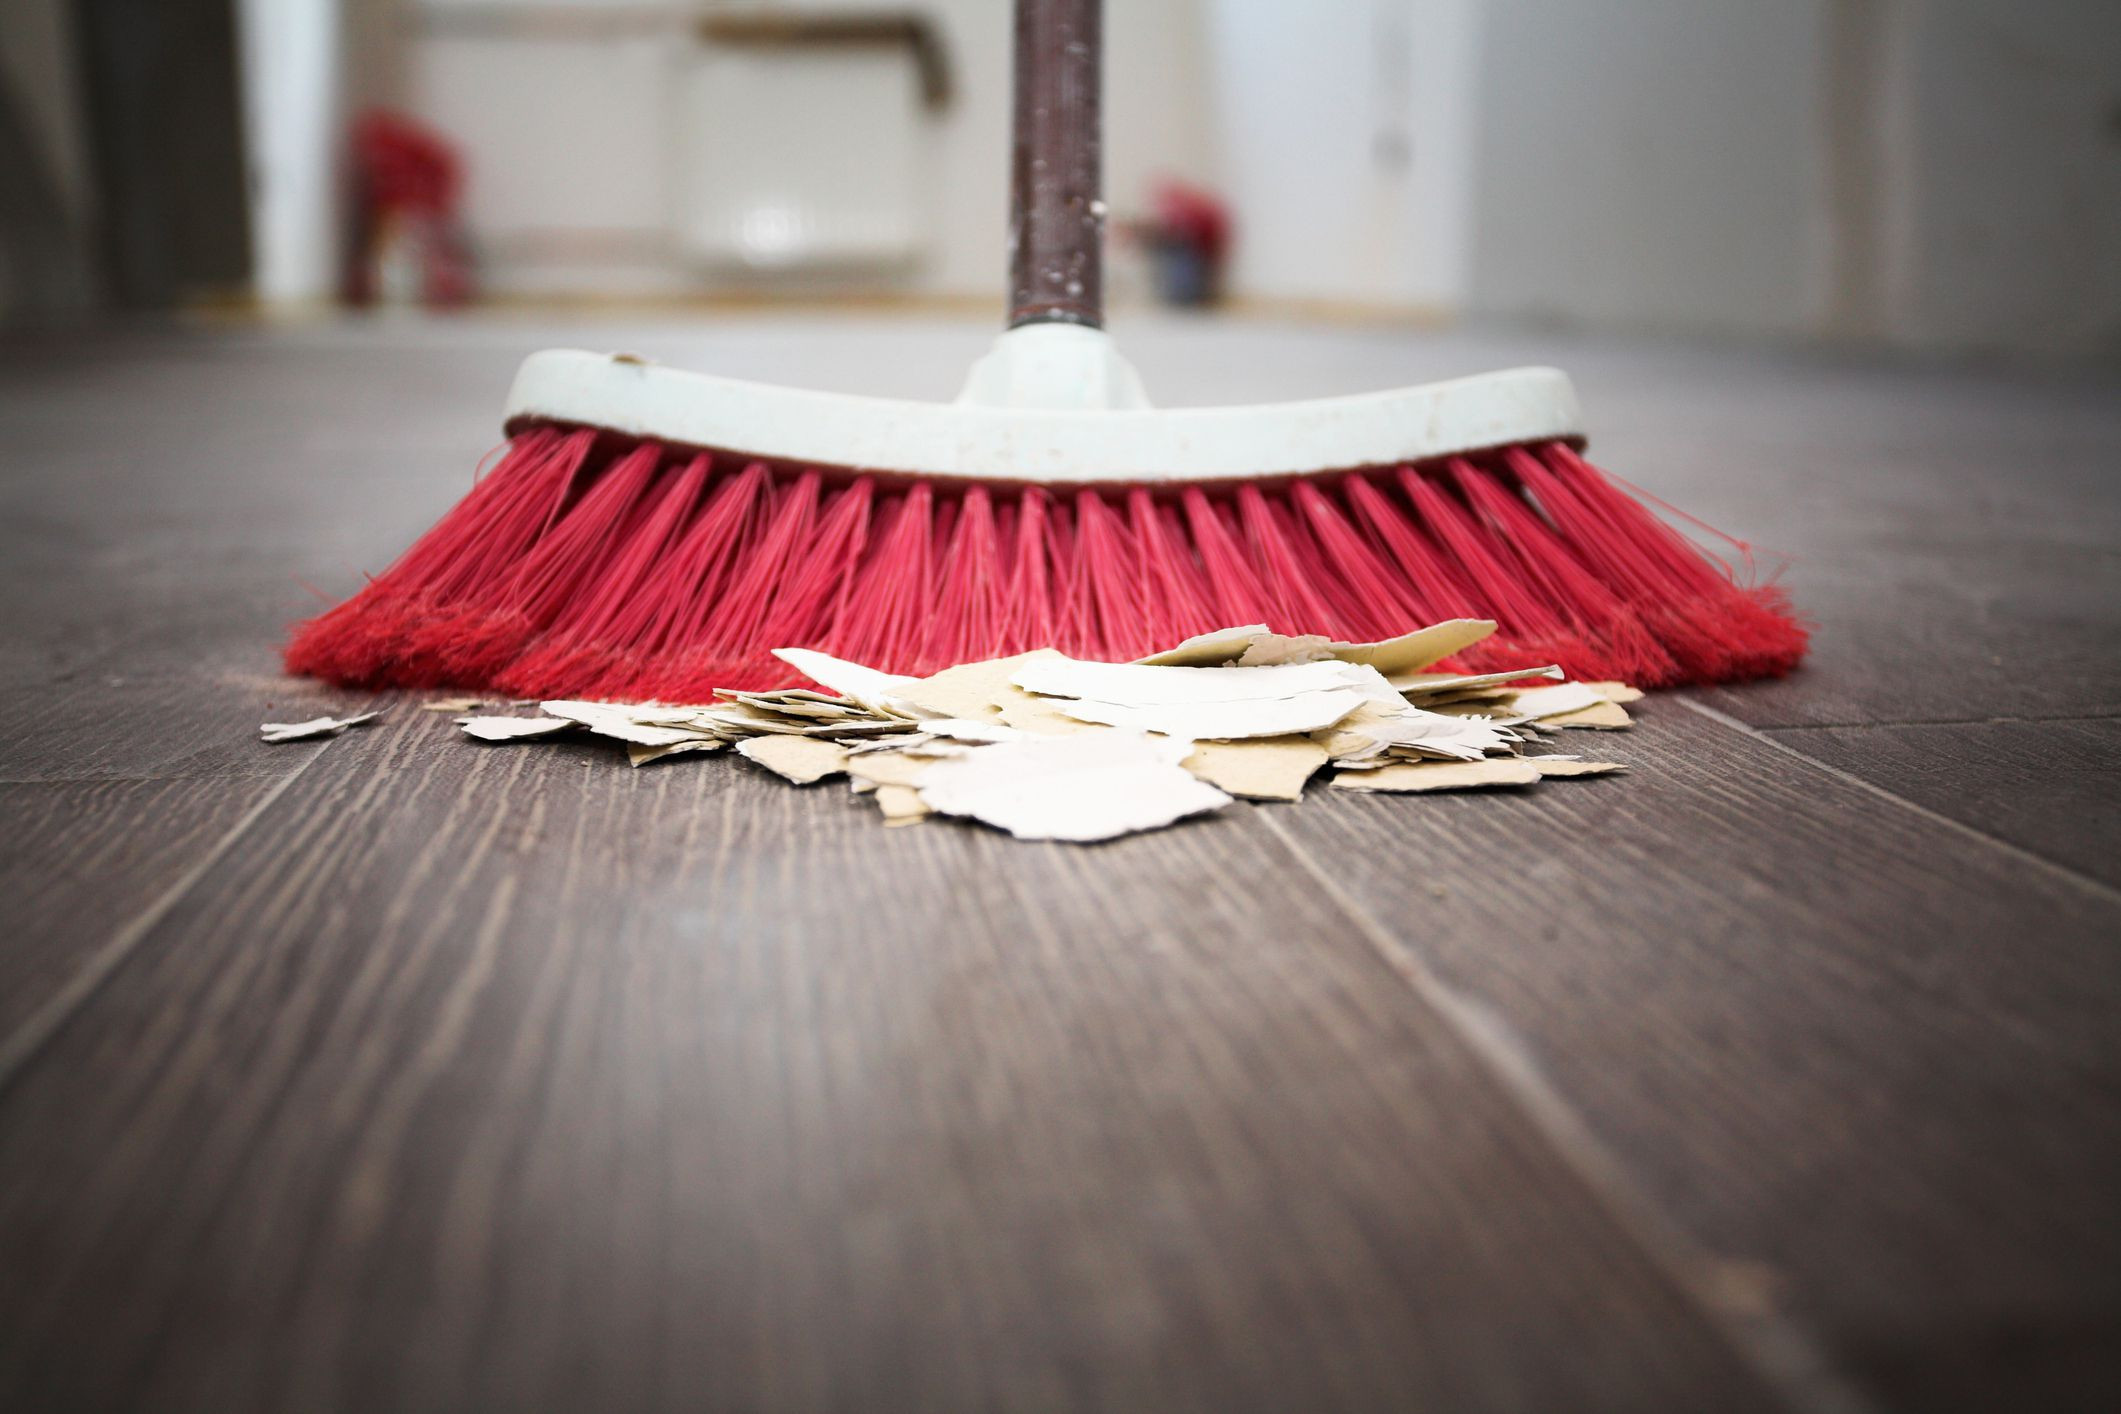 Mohawk Hardwood Laminate Floor Cleaner Of How to Sweep A Floor In Gettyimages 157383288 58c4e5465f9b58af5c20fab9